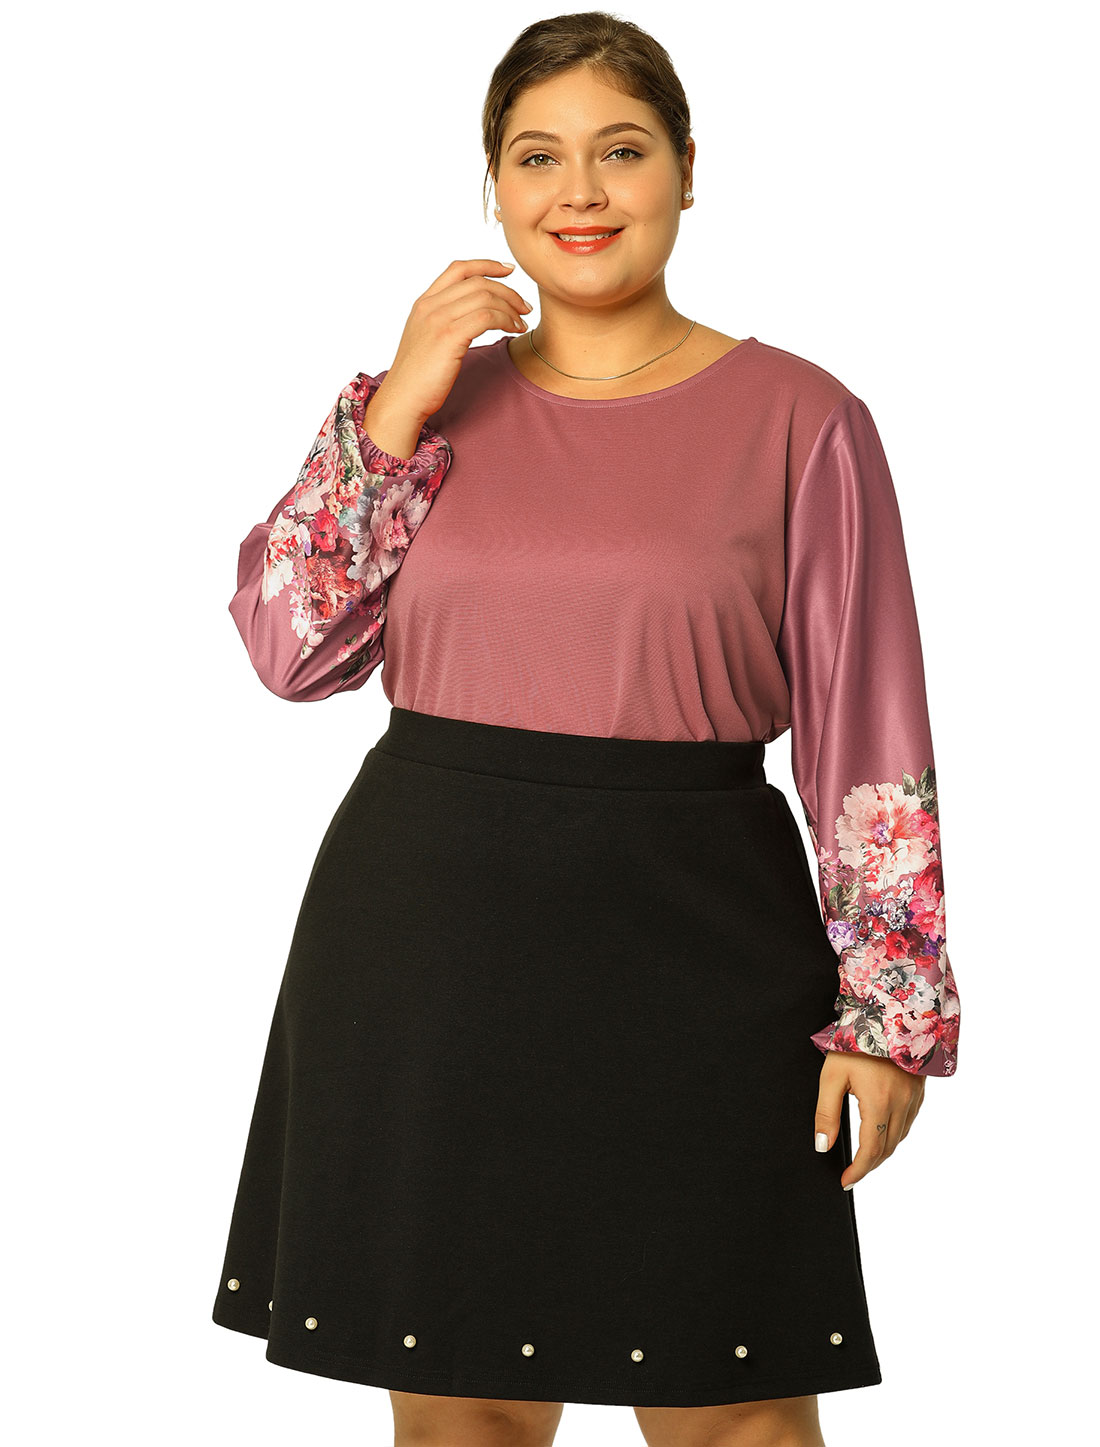 Womens Plus Size Floral Bishop Puff Sleeves Loose Casual Top Pink 2X